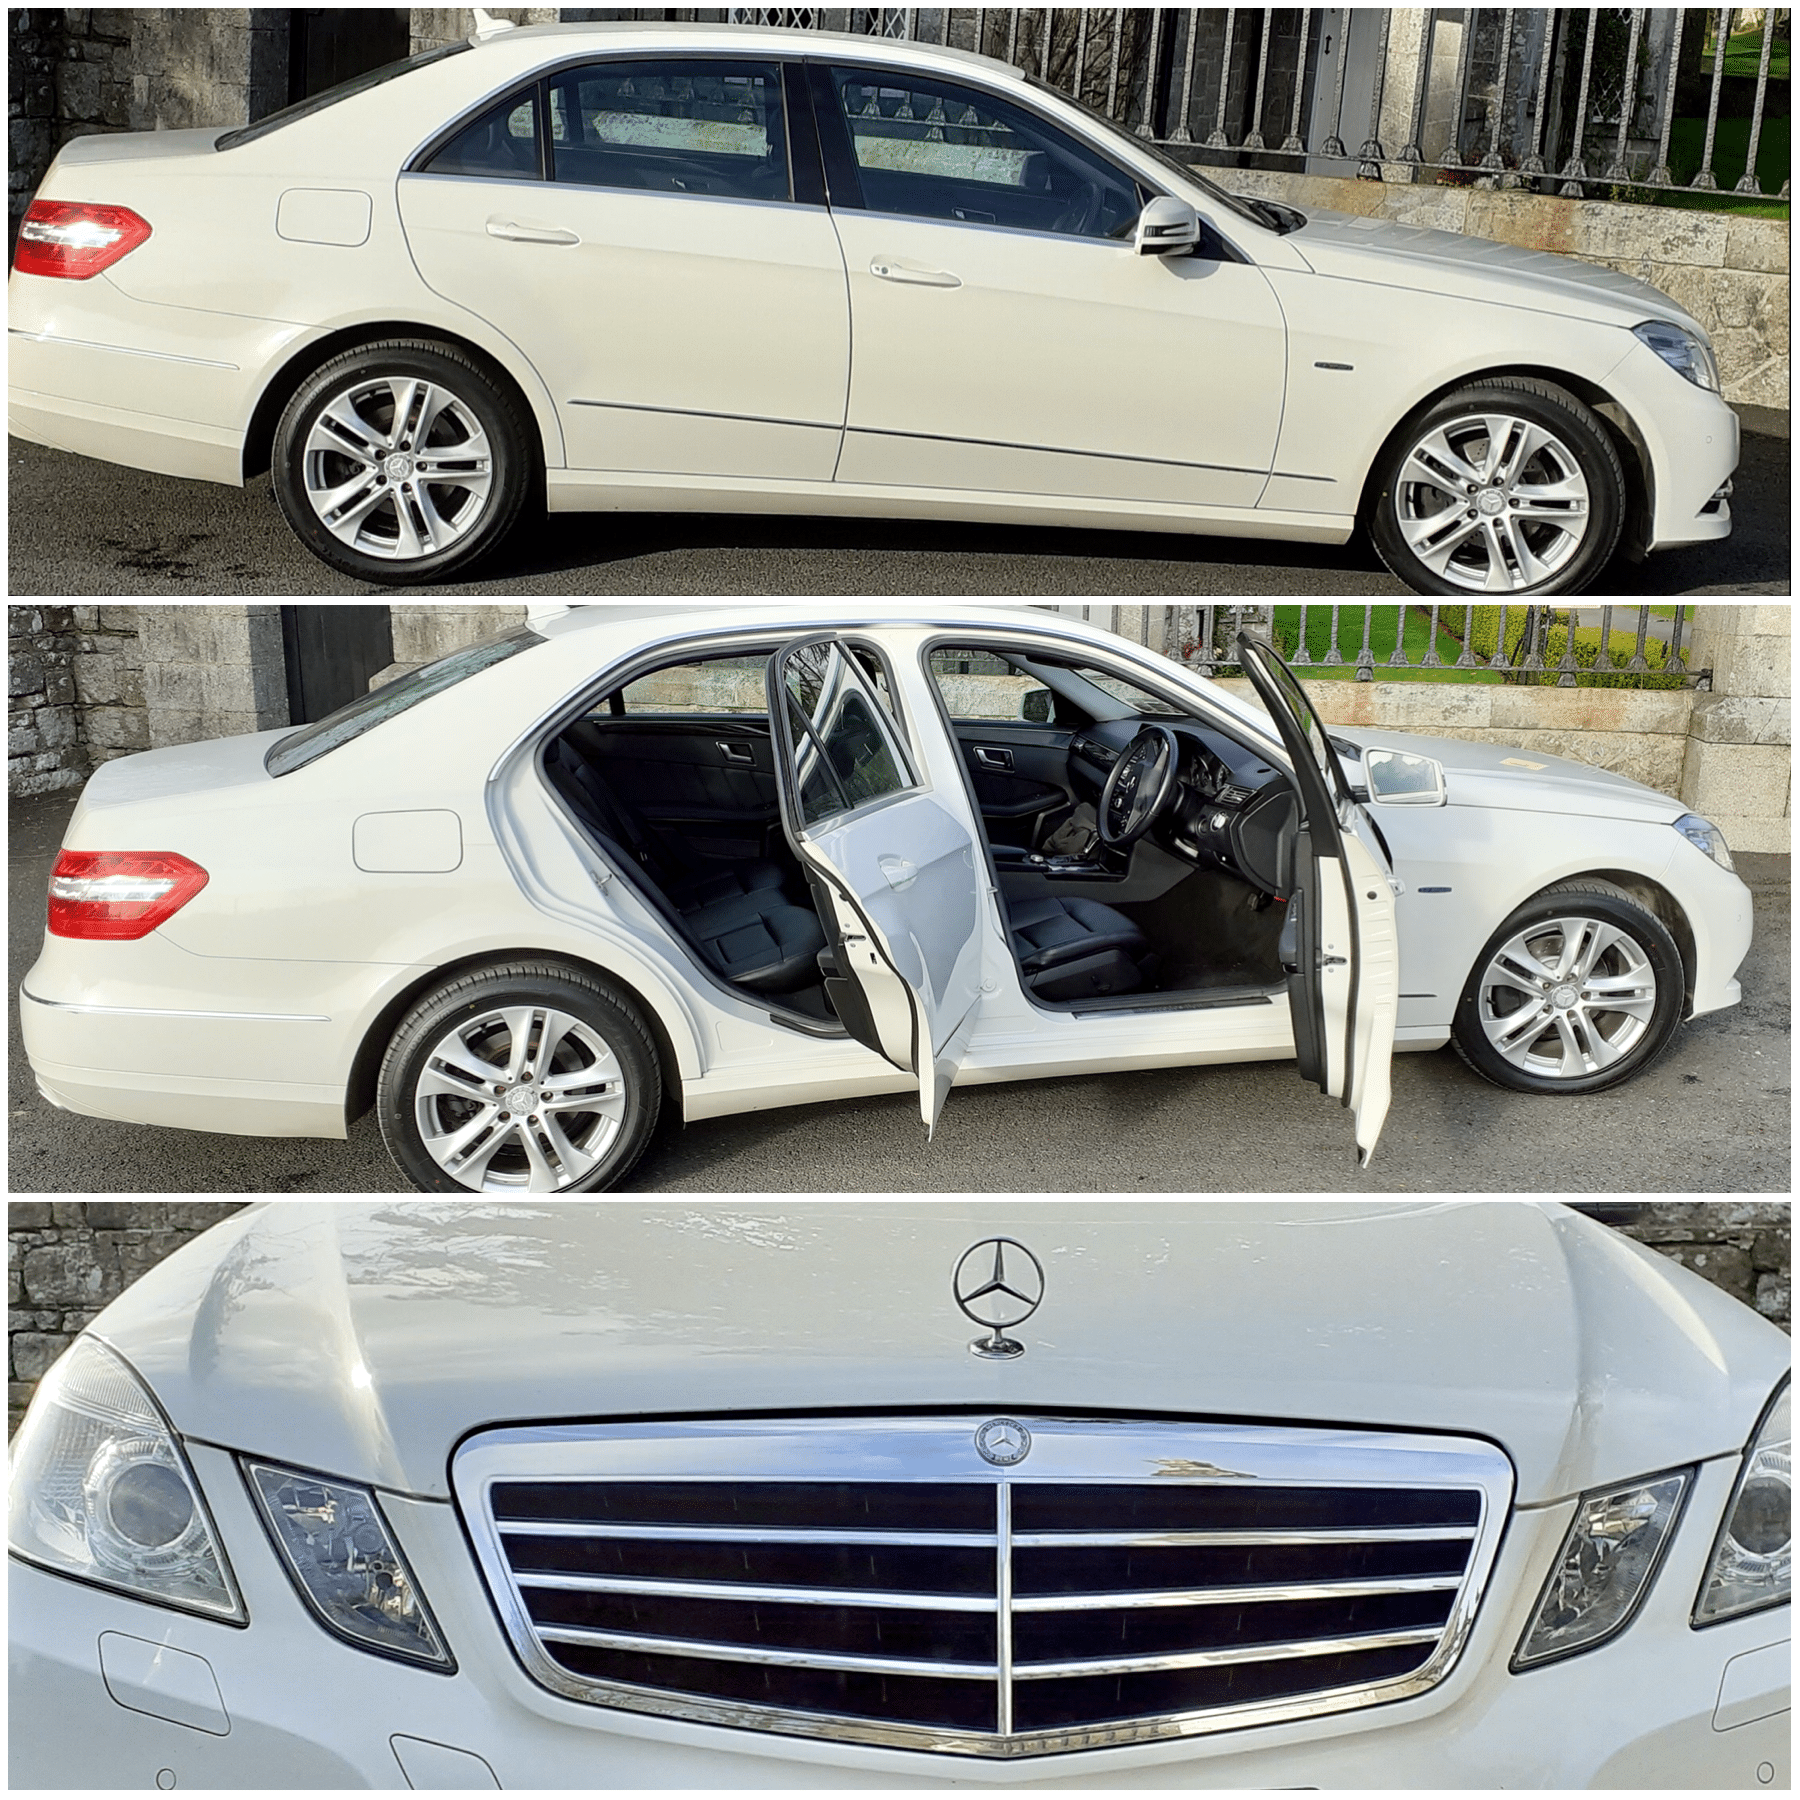 A Mercedes E200, one of our white wedding cars